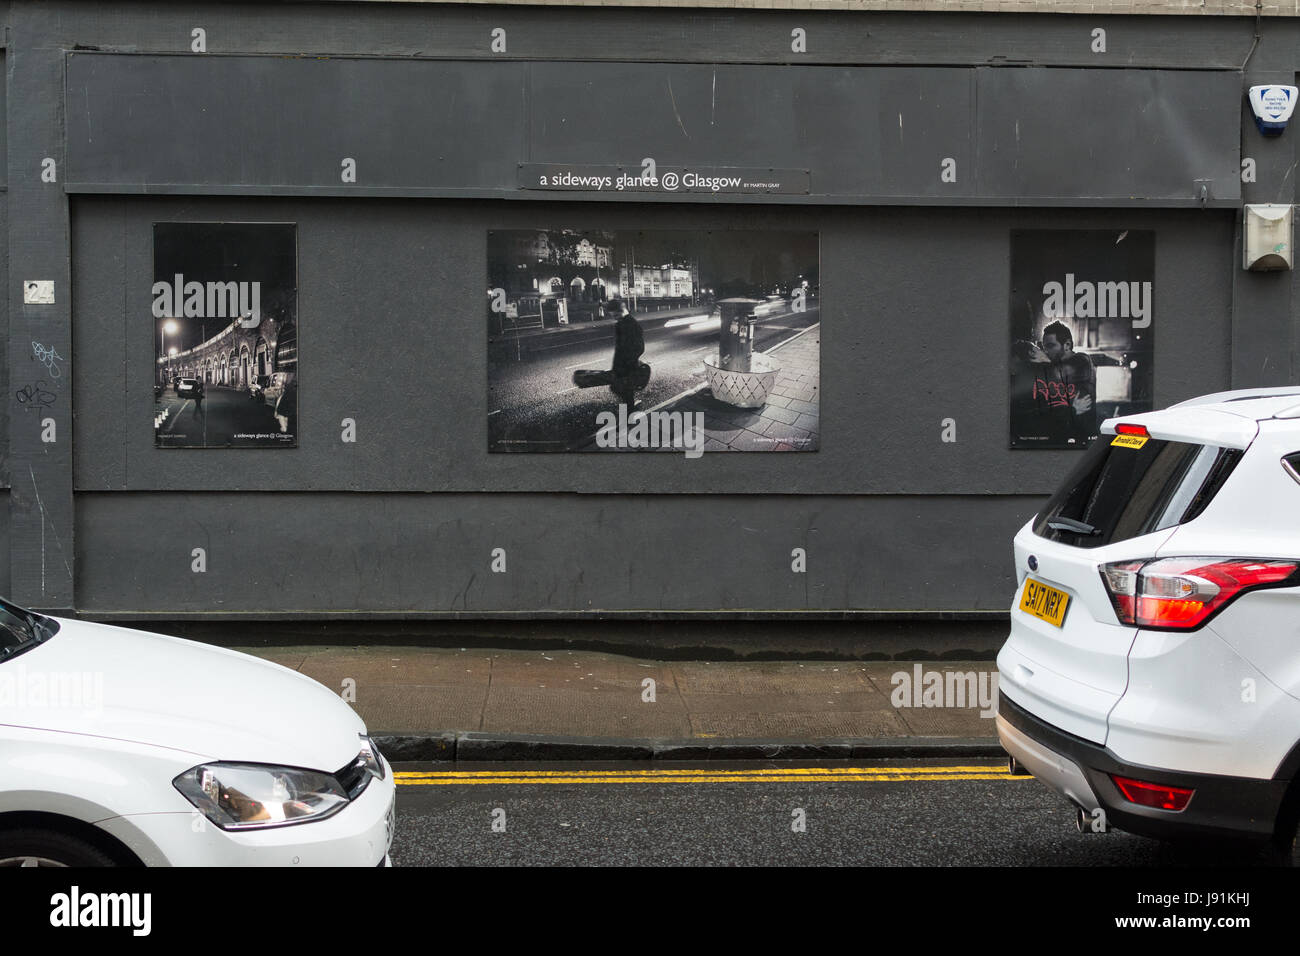 a sideways glance @ Glasgow - photography posters in Glasgow - exhibition by Martin Gray by City Centre Posters - Stock Image